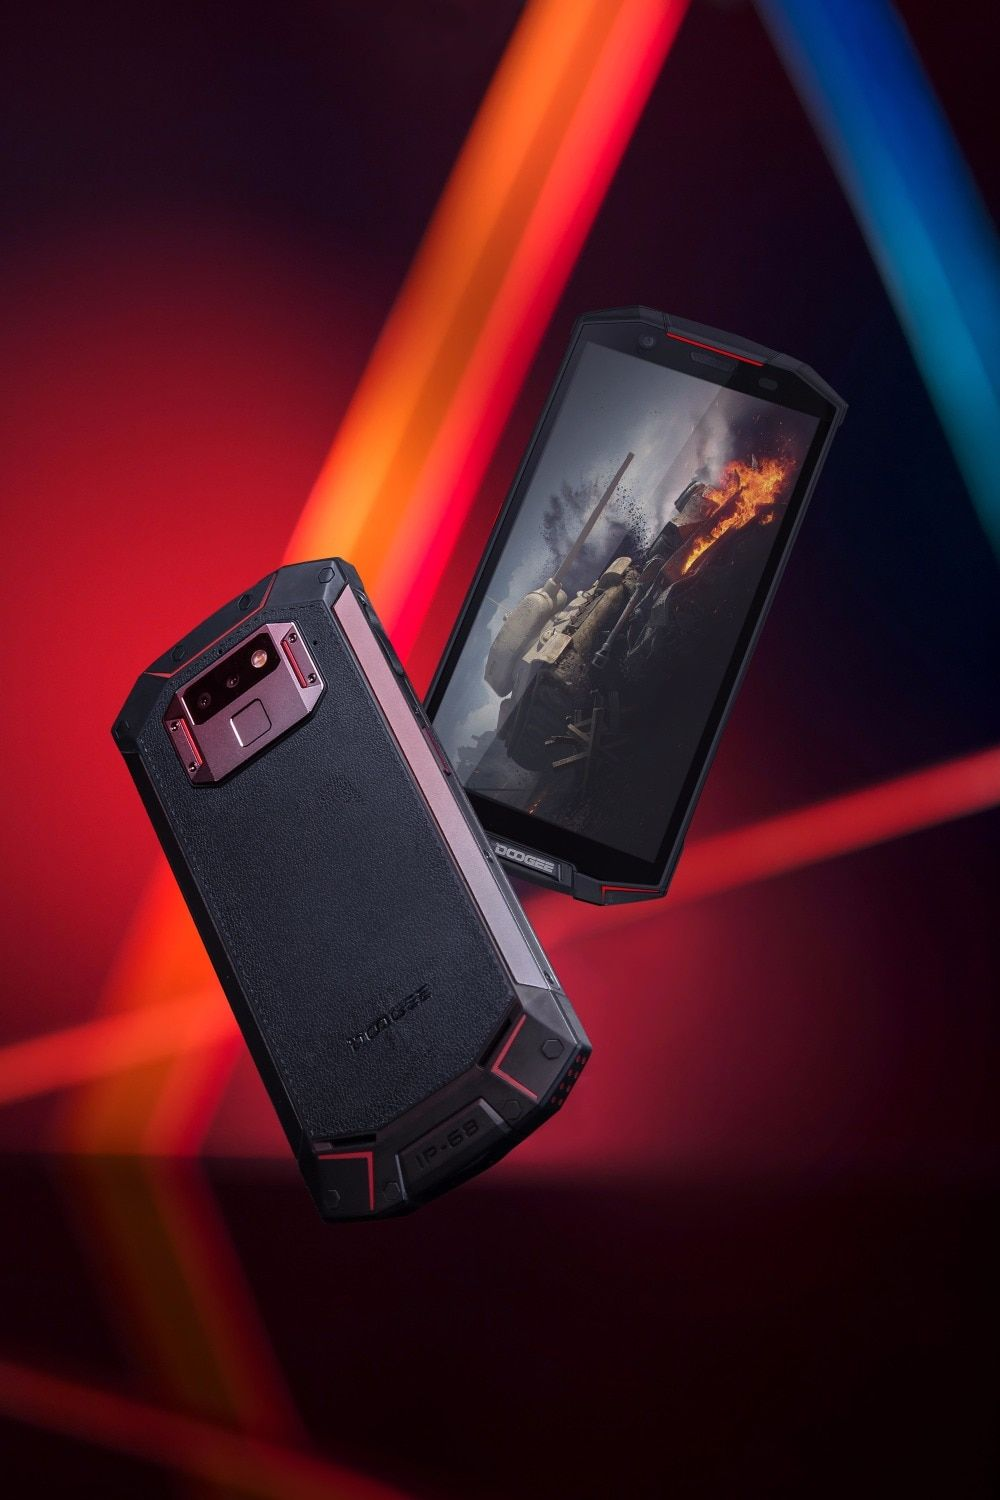 Nuevo Doogee S70 Lite Ip68 Impermeable Del Telefono Movil Android